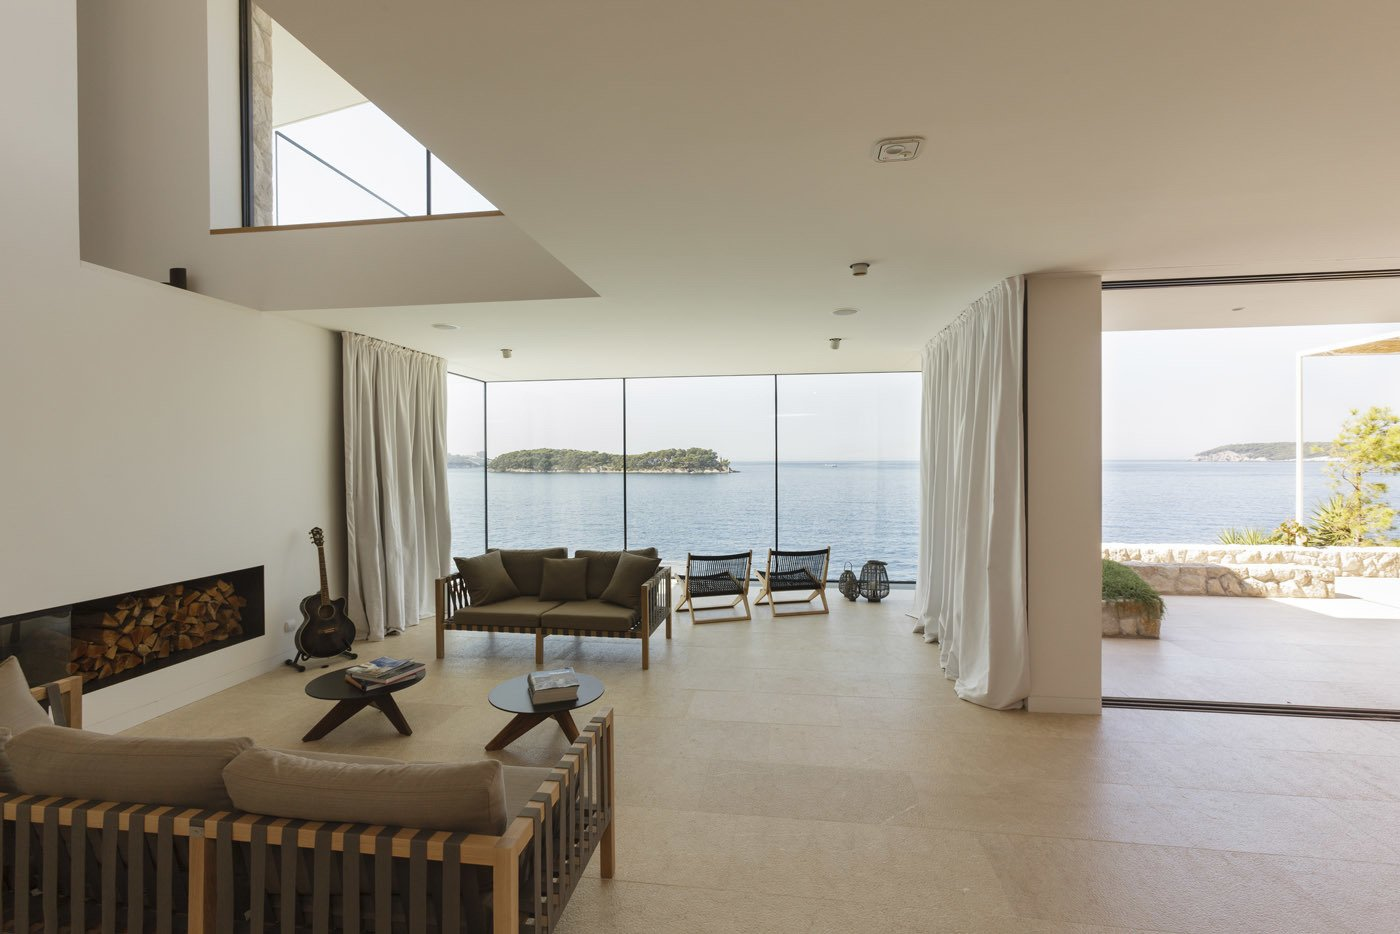 Living room and the view of the sea  House V2 by 3LHD